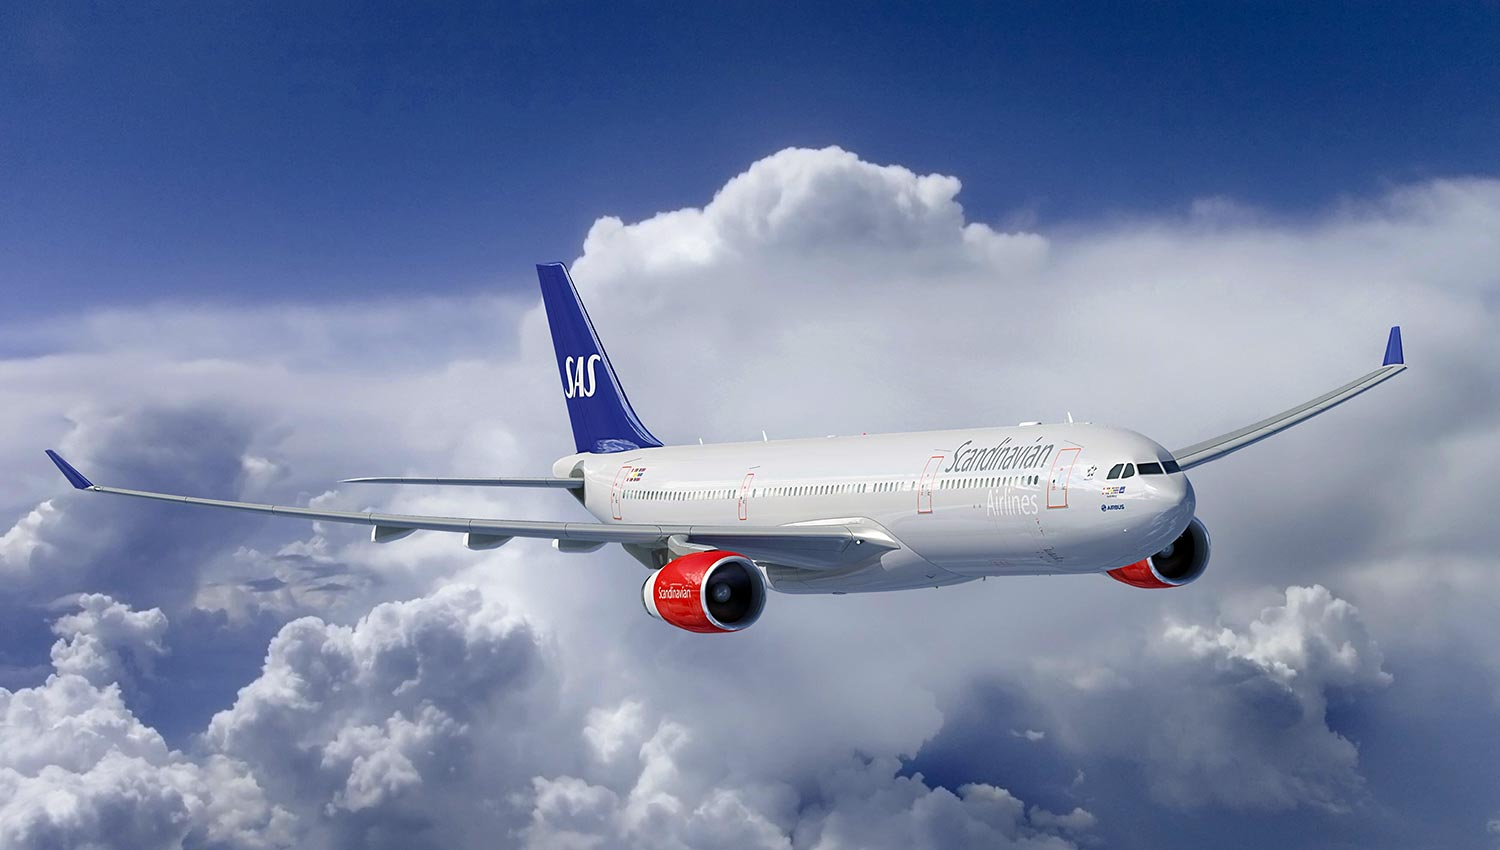 SAS offers direct flights to the South by Southwest (SXSW